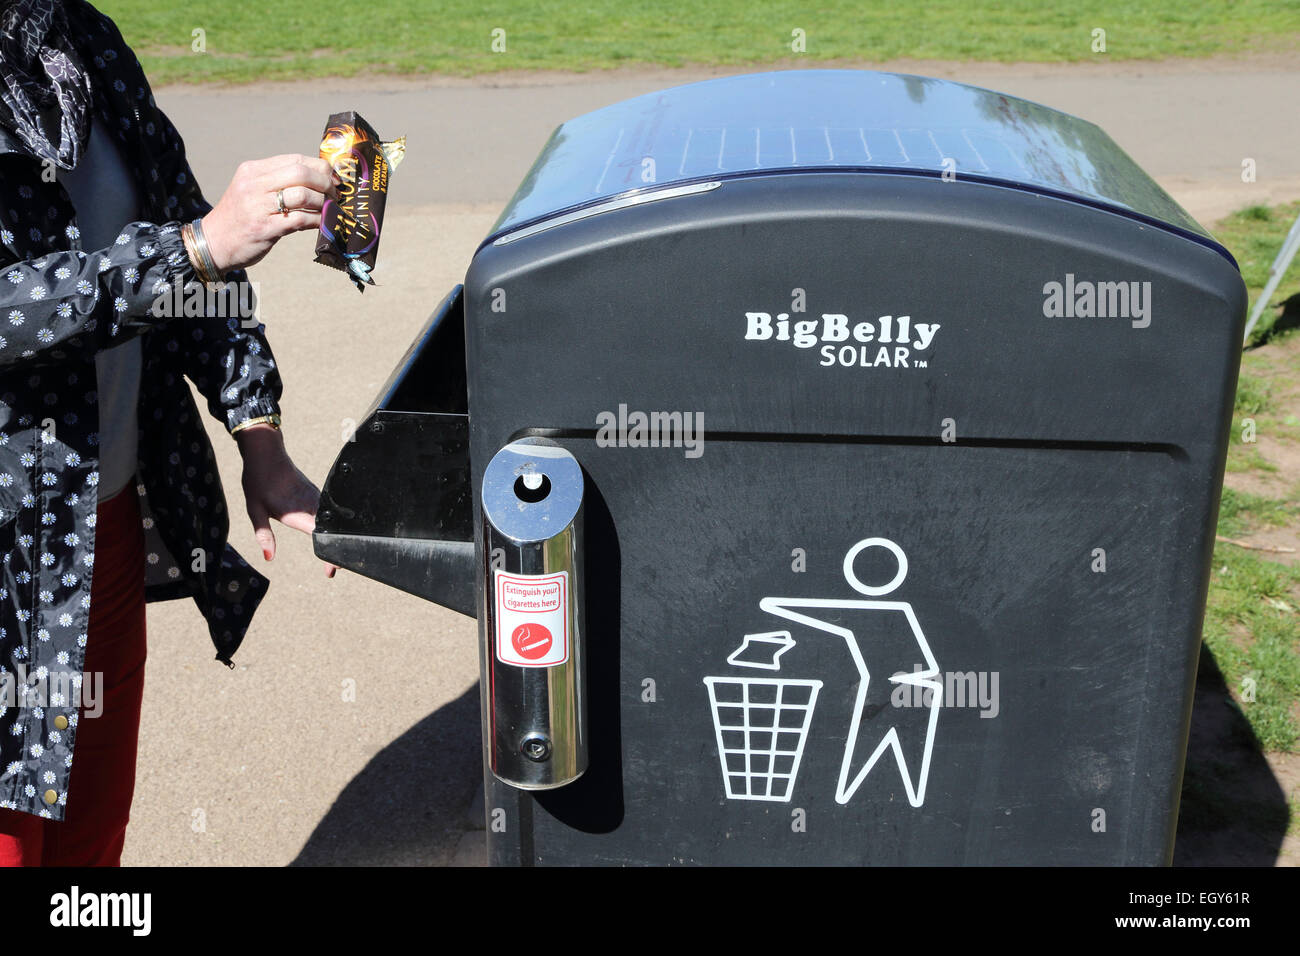 Solar powered waste bin which periodically compresses its contents so it does not need emptying so frequently. - Stock Image